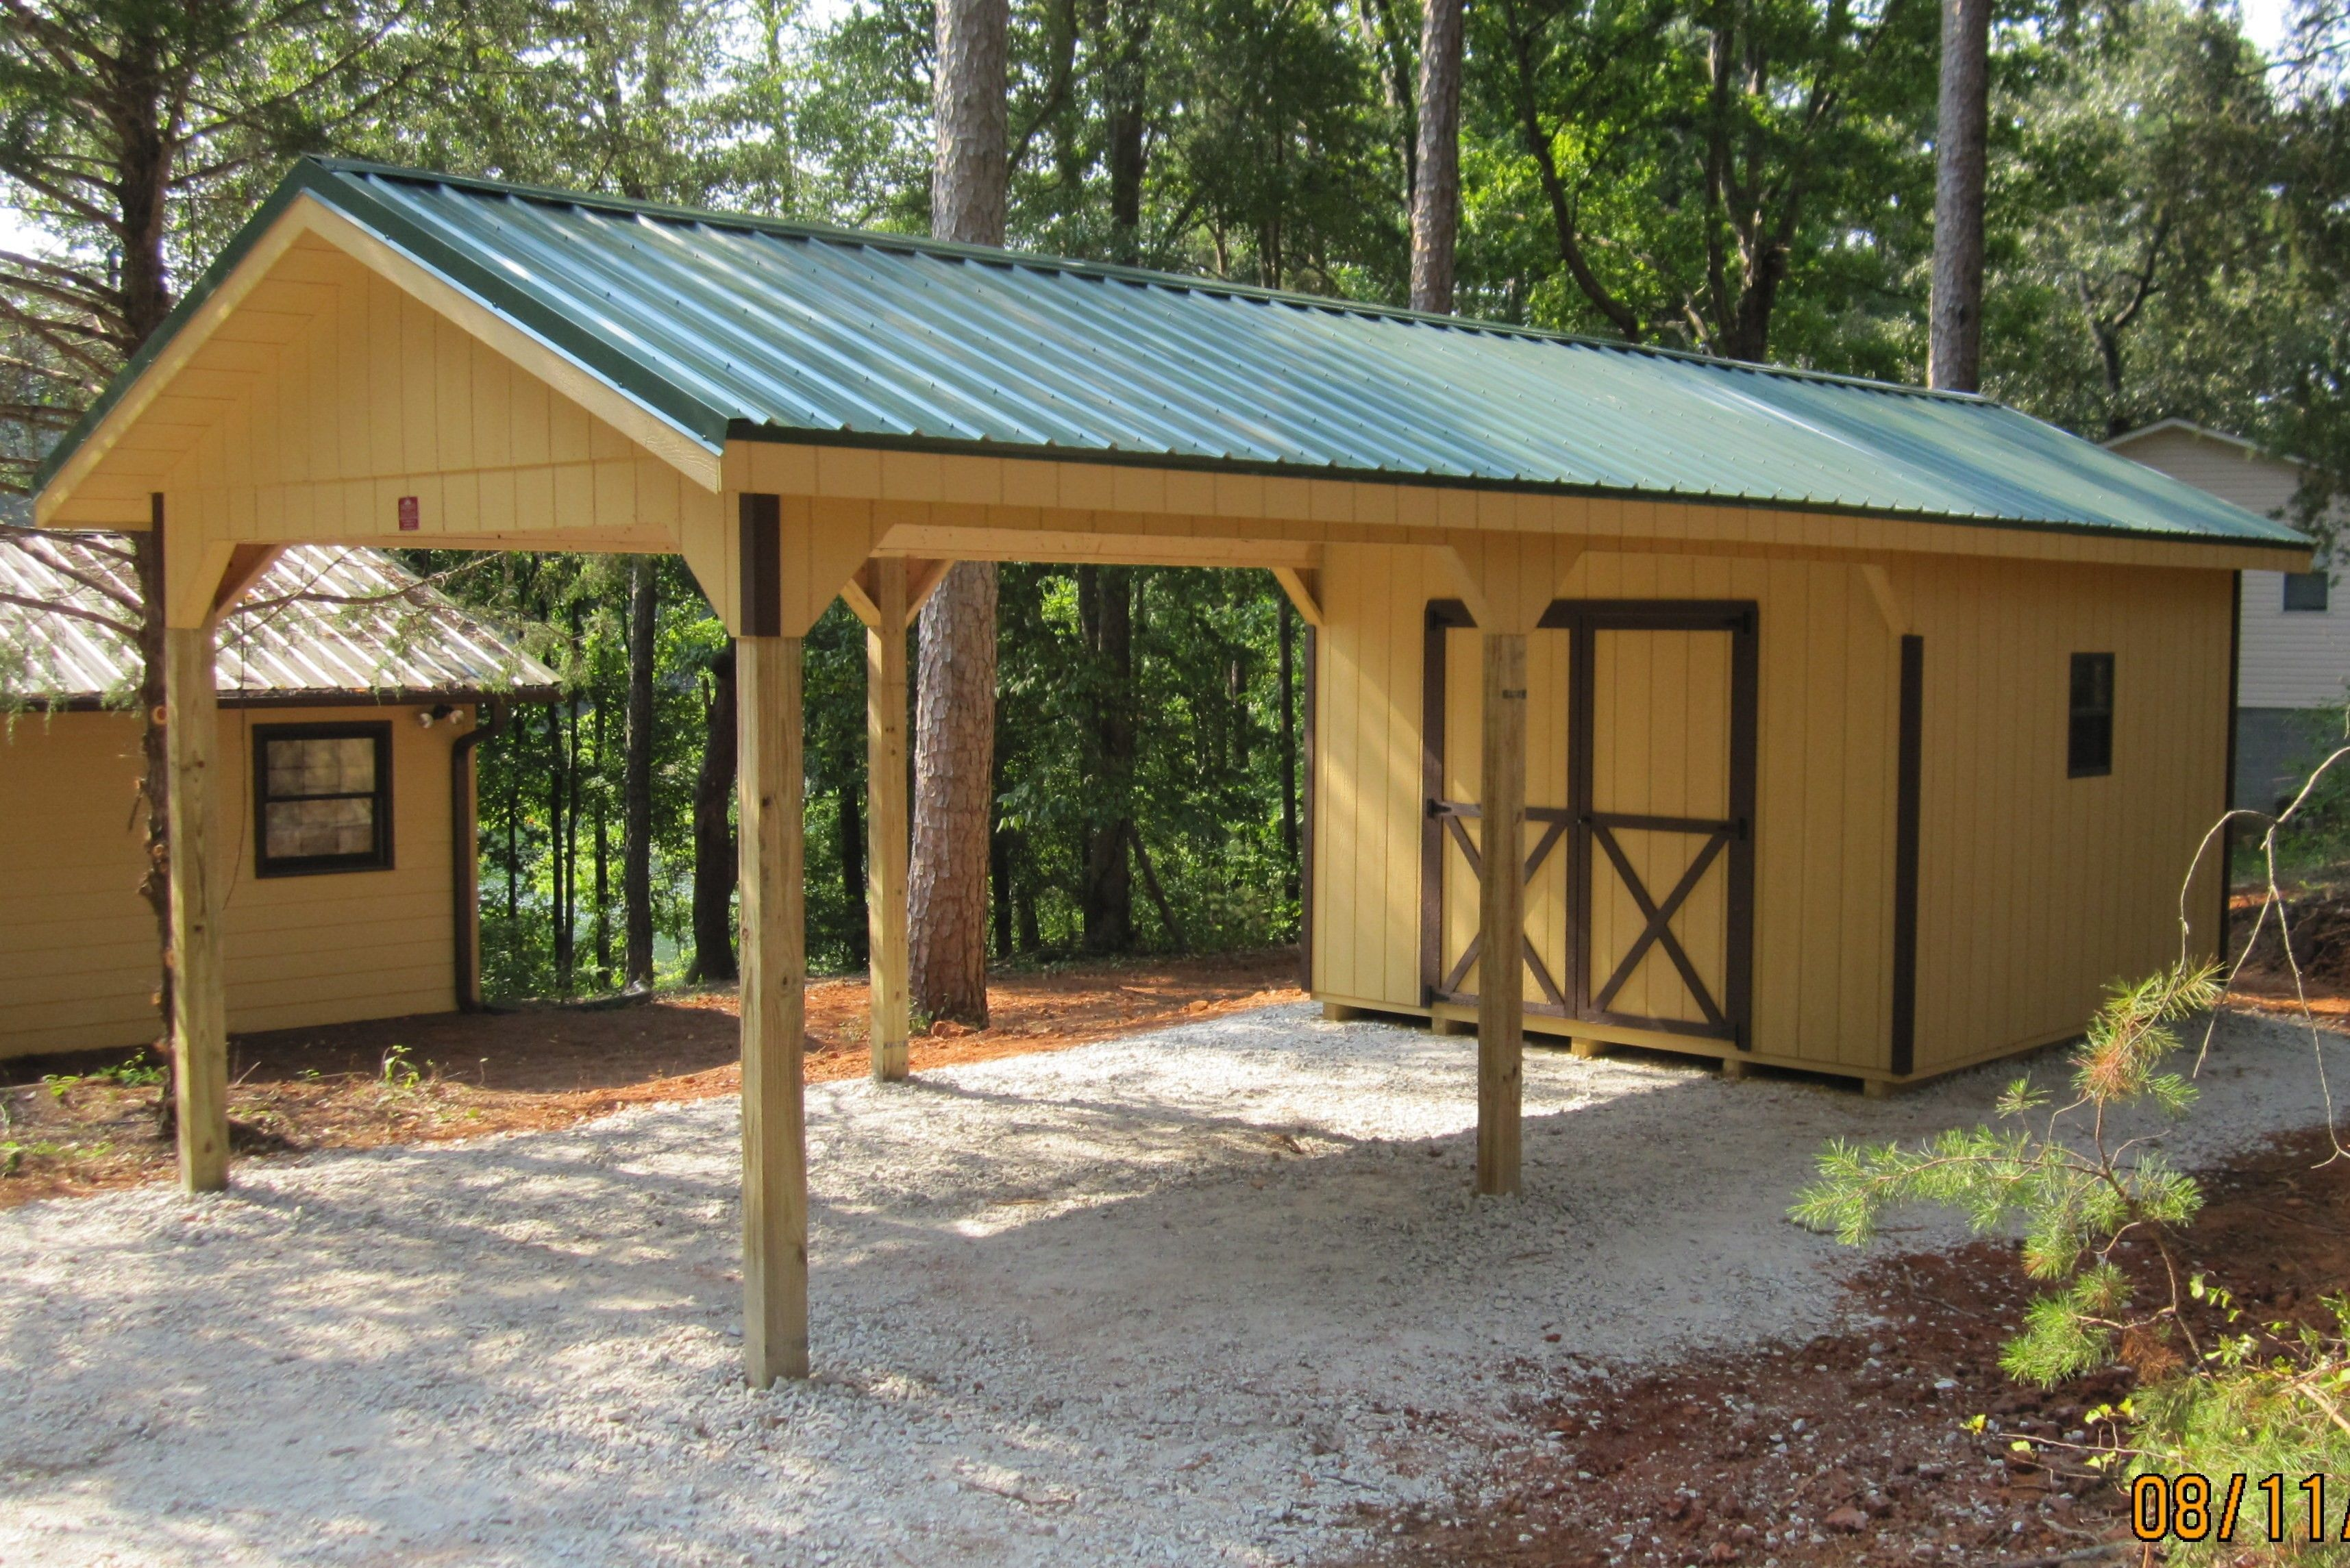 Carport Shed Plans Storage Shed Plans